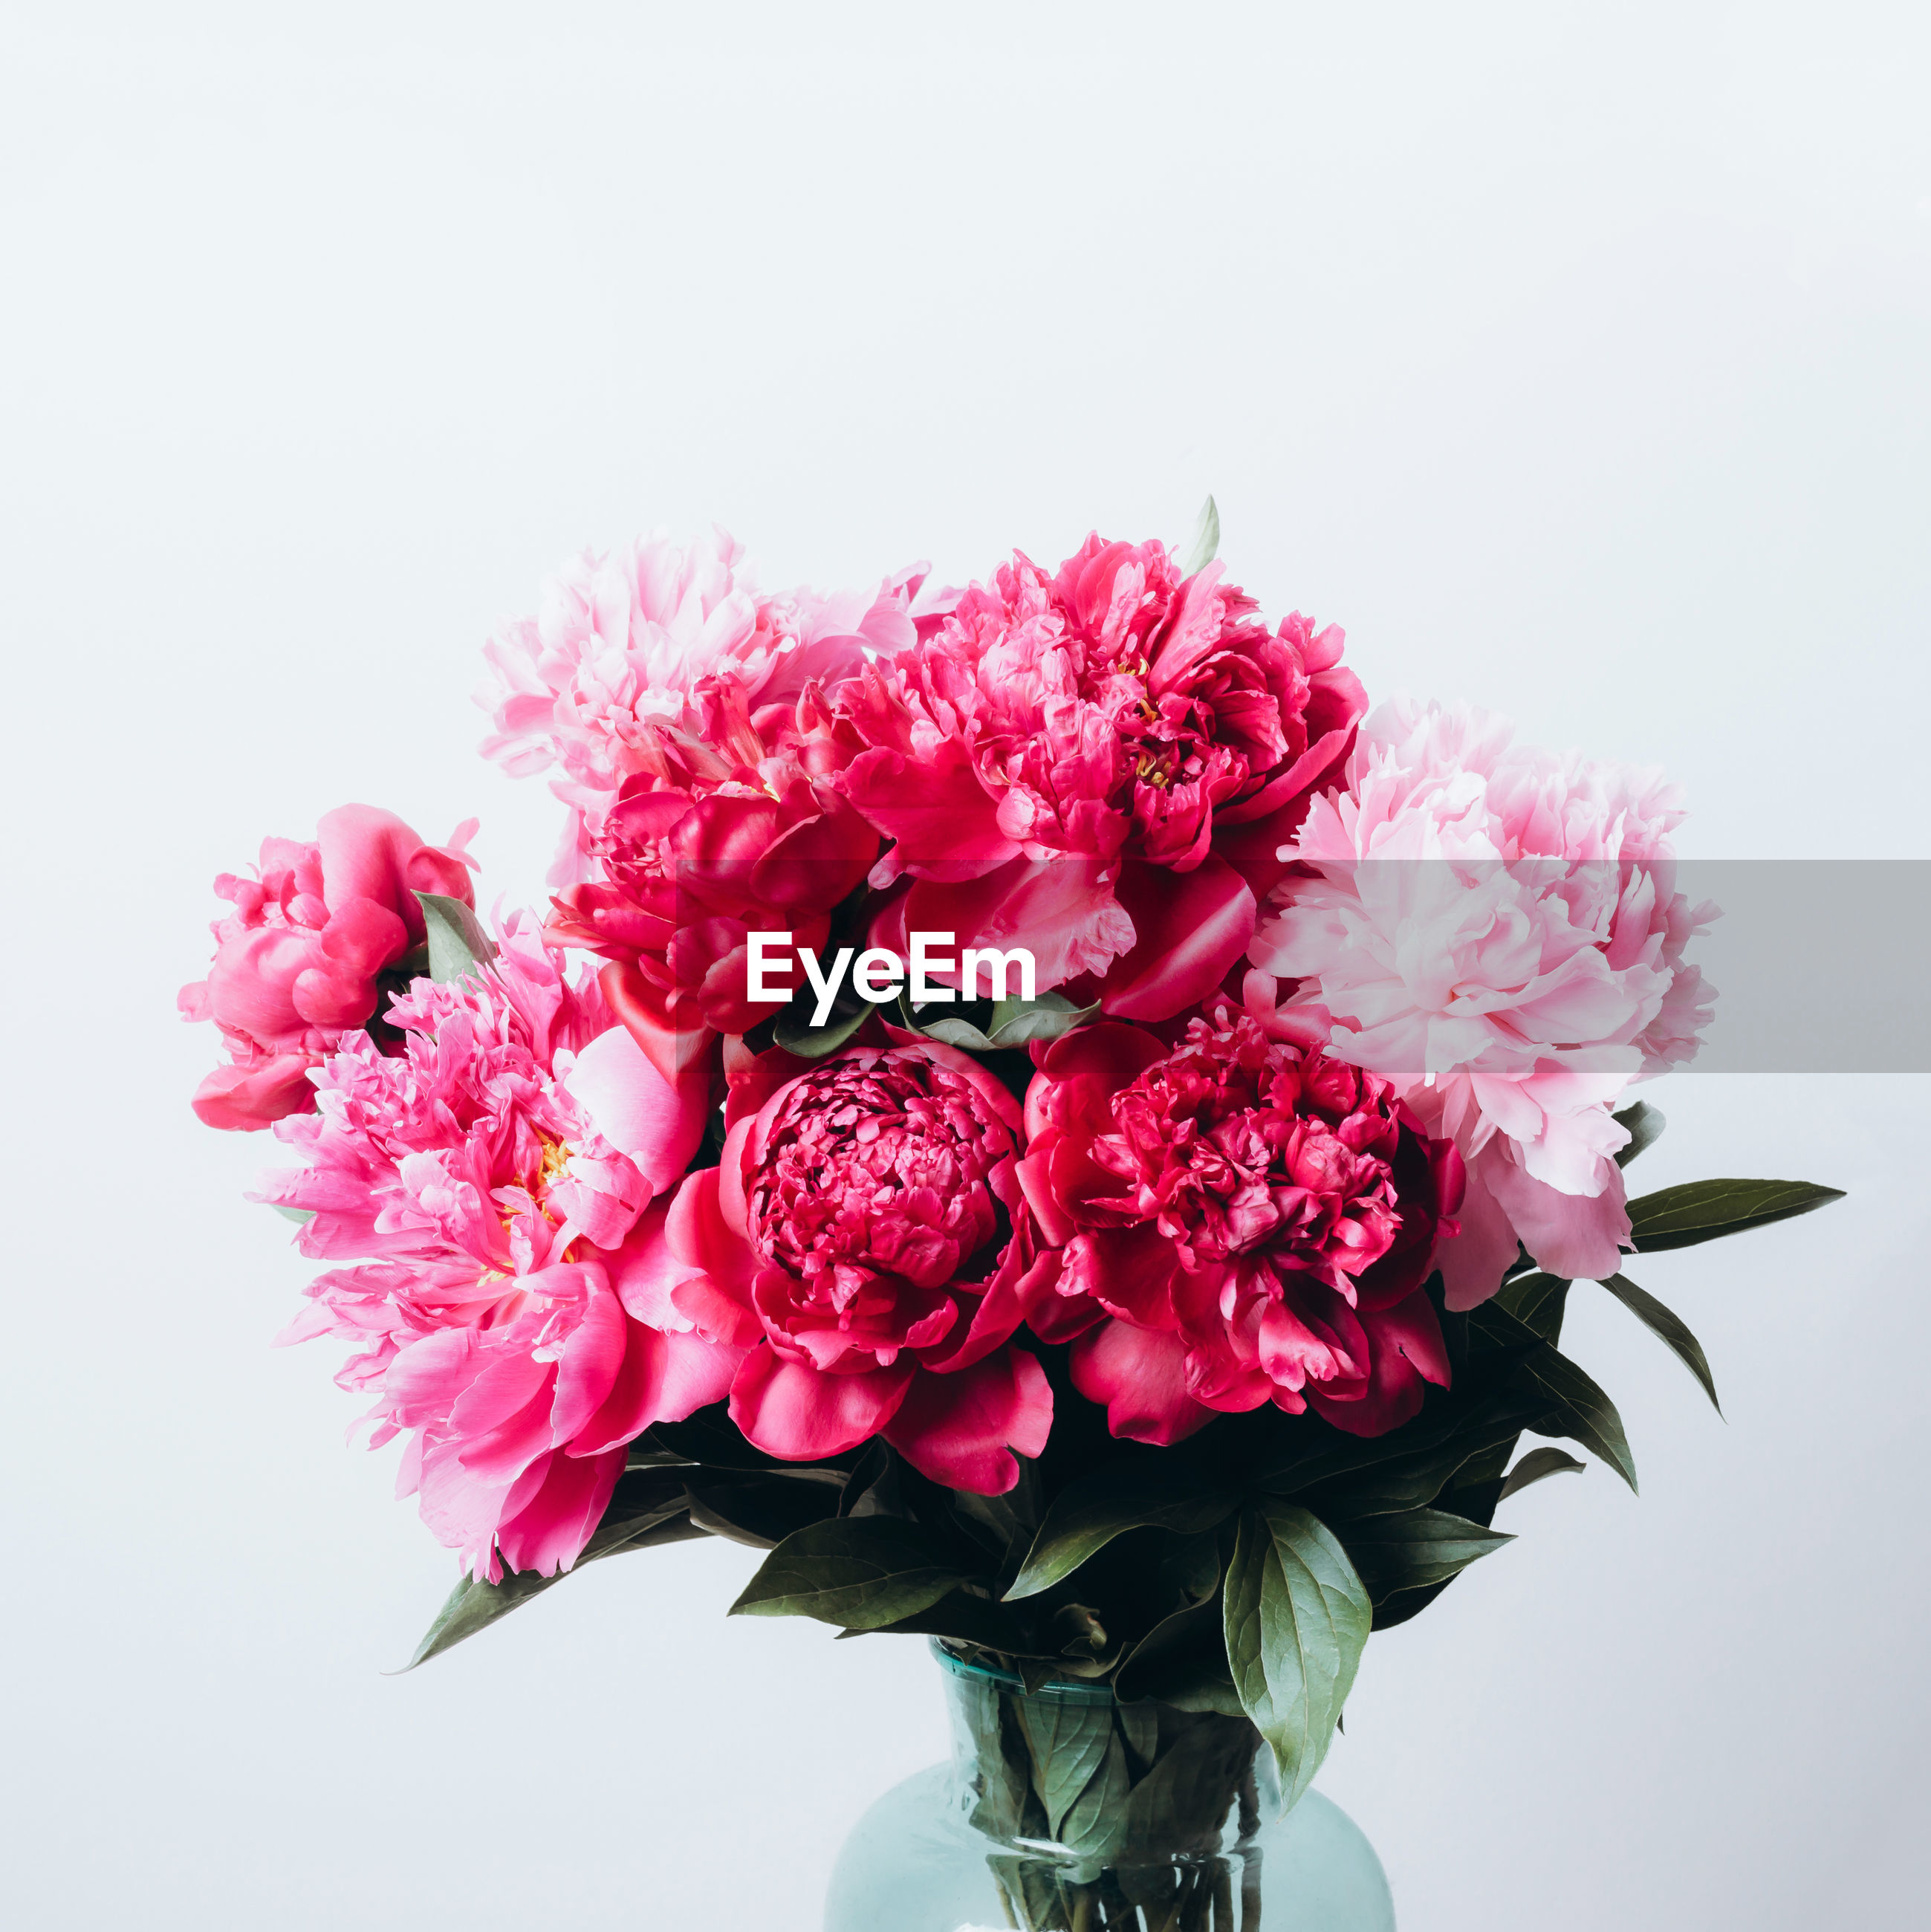 CLOSE-UP OF PINK ROSE FLOWER AGAINST WHITE BACKGROUND